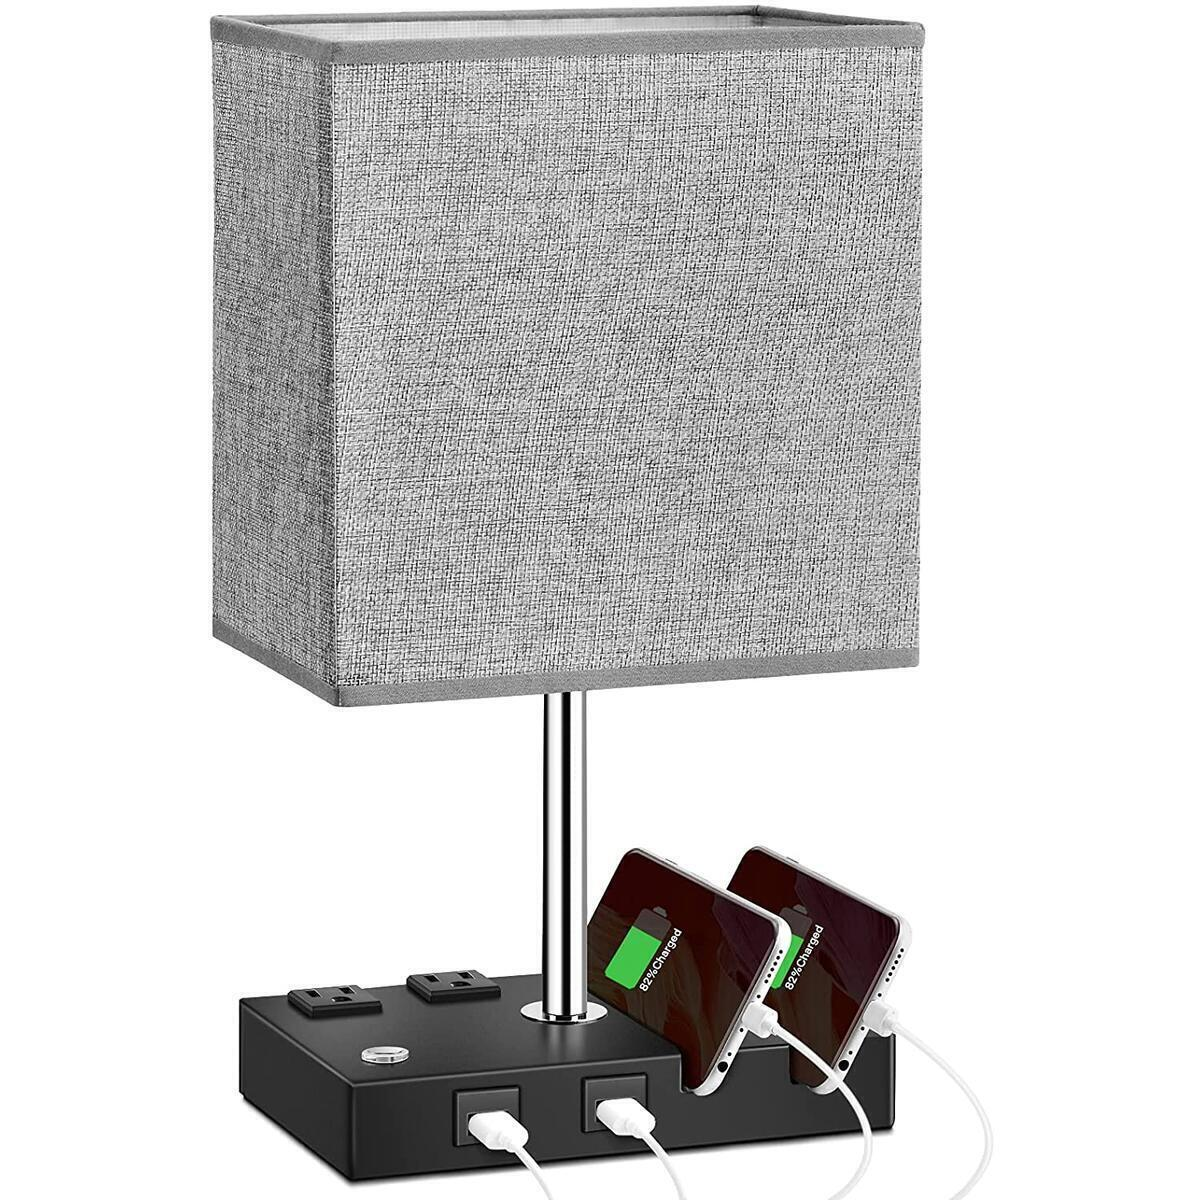 Bedside Table Dimmable Lamp Desk Lamp with 2 USB Charging Ports, 2 AC Outlets and 2 Phone Stands for bedrooms